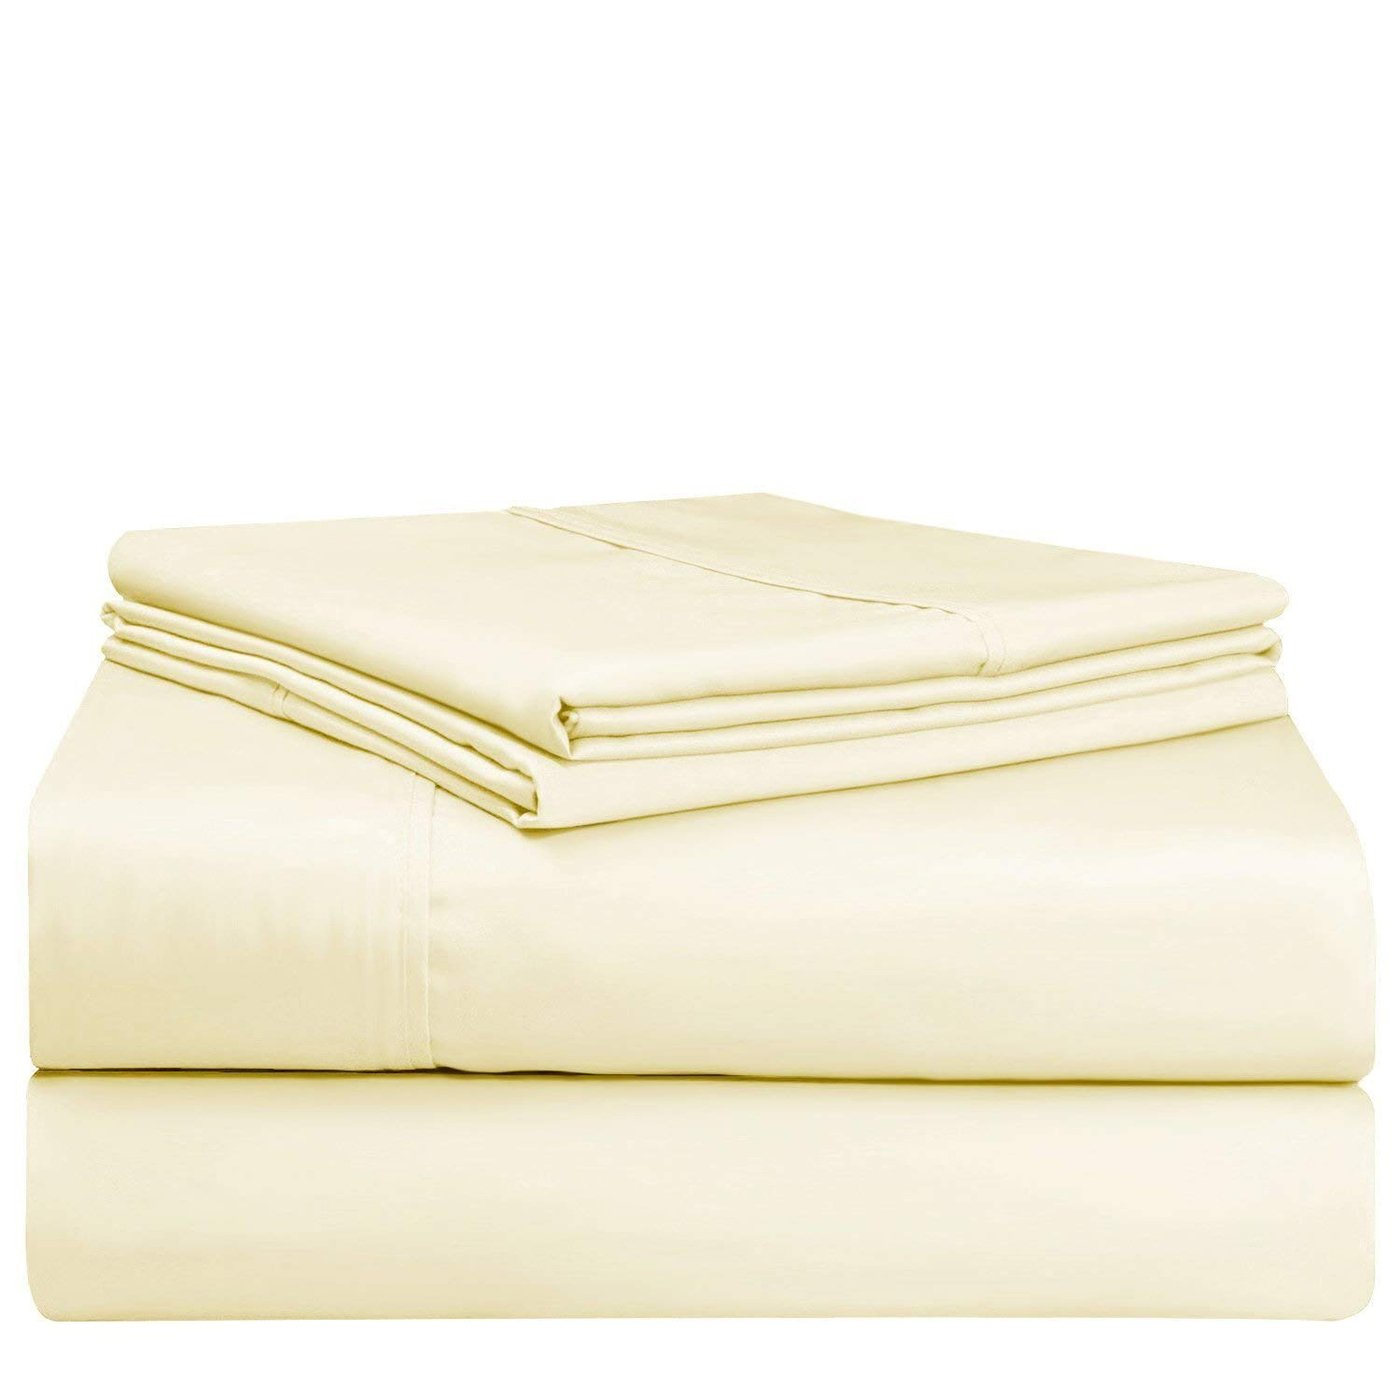 Sheets 50% Bamboo / 50% Polyester en.bleu.eco Draps. From $99.95 to $169.95. 33000-S.